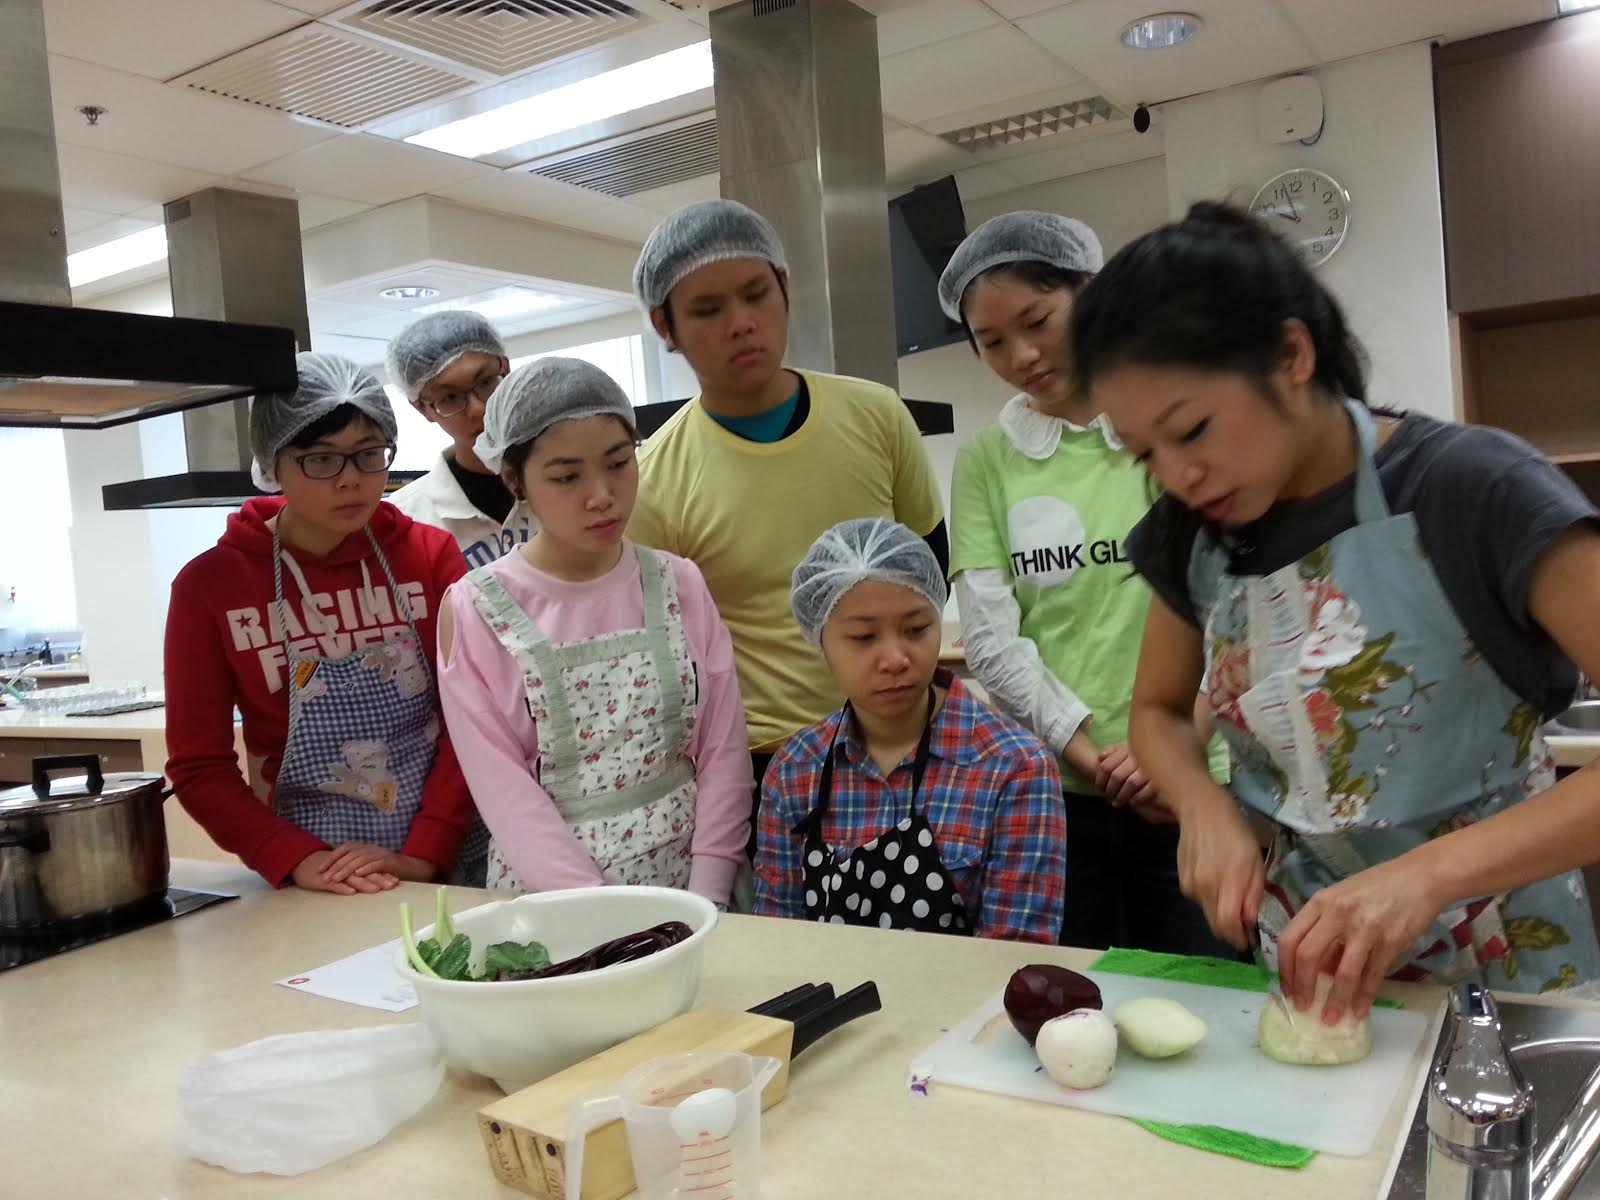 Feeding Hong Kong - Make Festive Treats for the Needy - Photo - 9